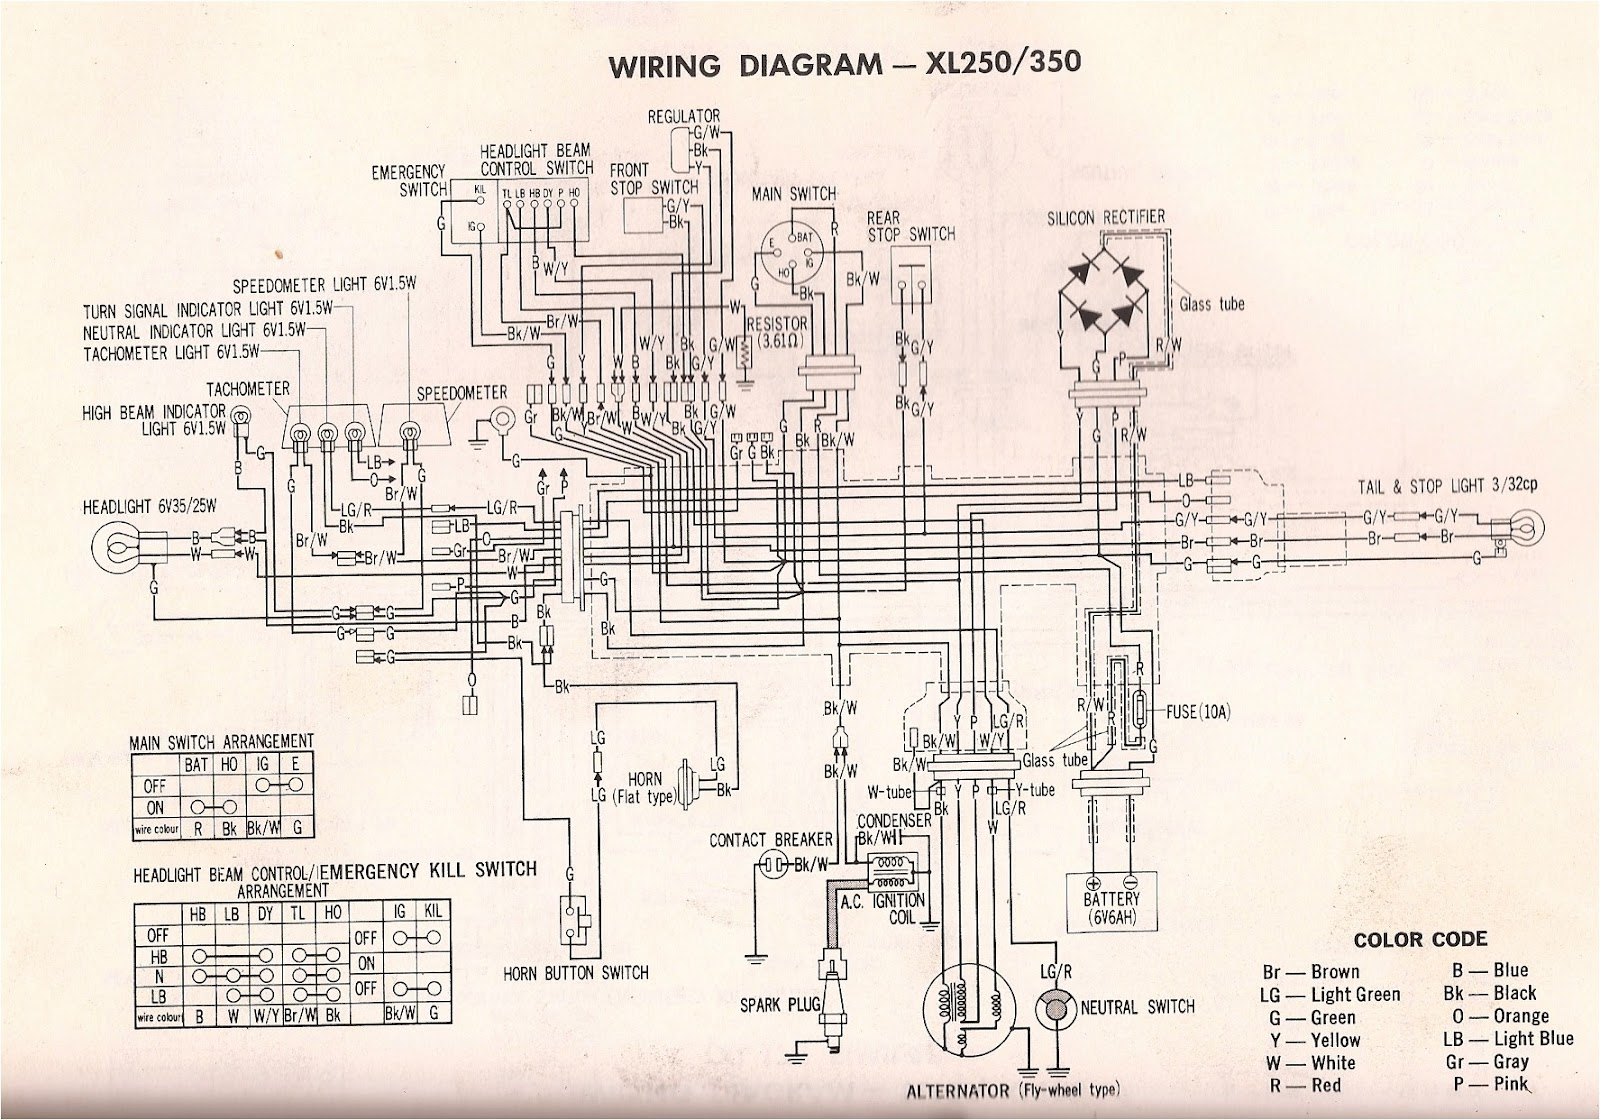 XL350+Wiring+diagram+S r4l xl350 wiring diagram (and xl250) honda cl360 wiring diagram at mr168.co